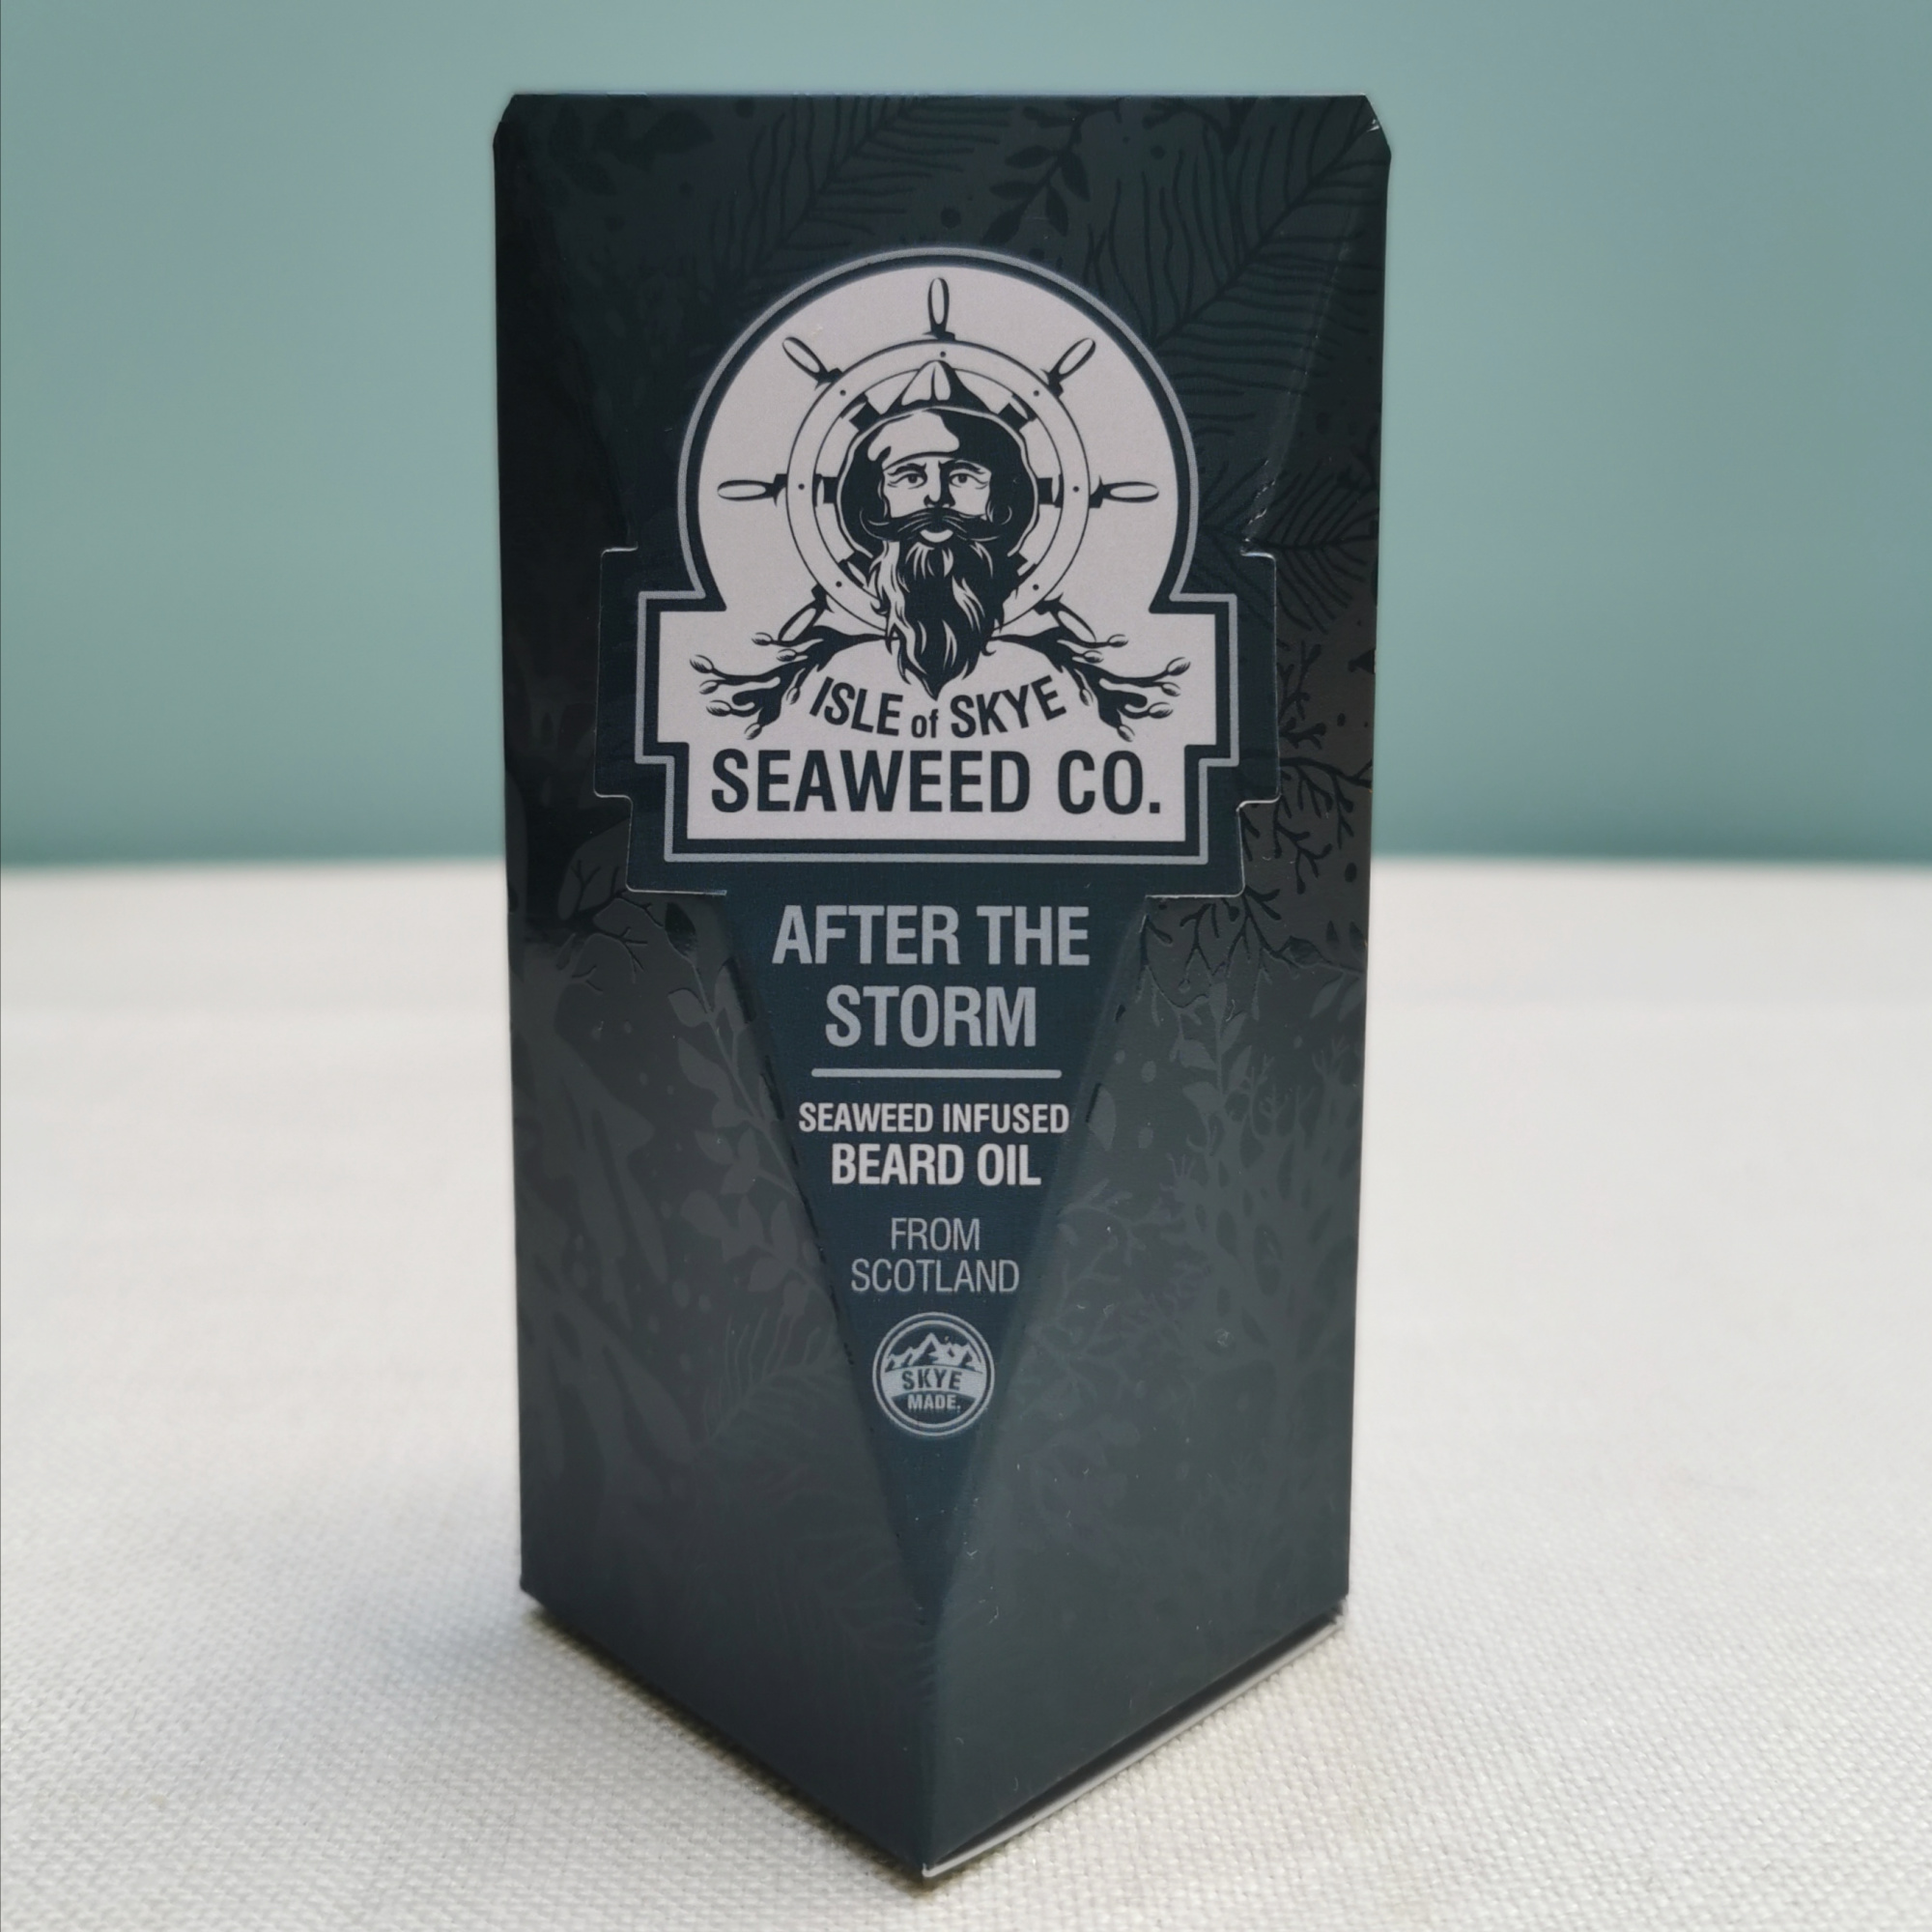 After the Storm Wild Seaweed Infused Beard Oil